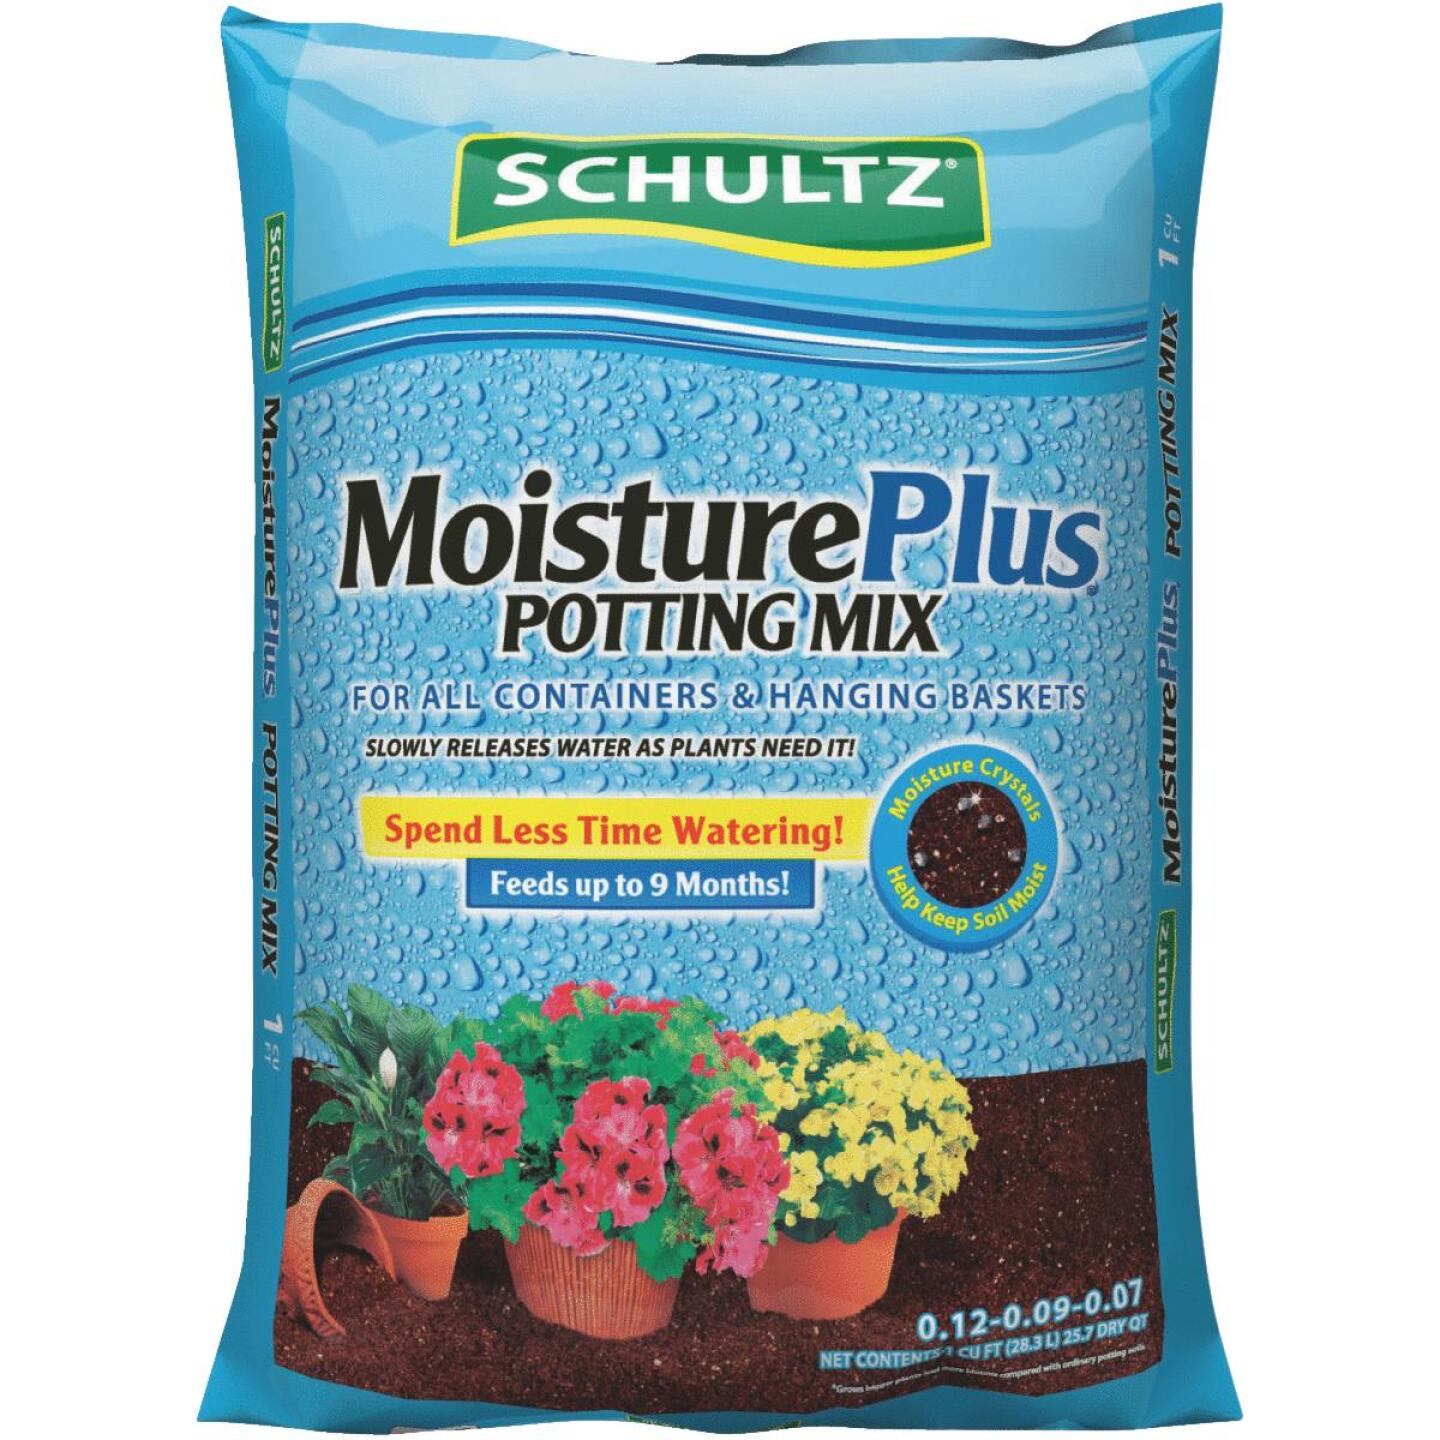 Schultz MoisturePlus 1 Cu. Ft. 23-1/2 Lb. All Purpose Containers & Hanging Baskets Potting Soil Image 1